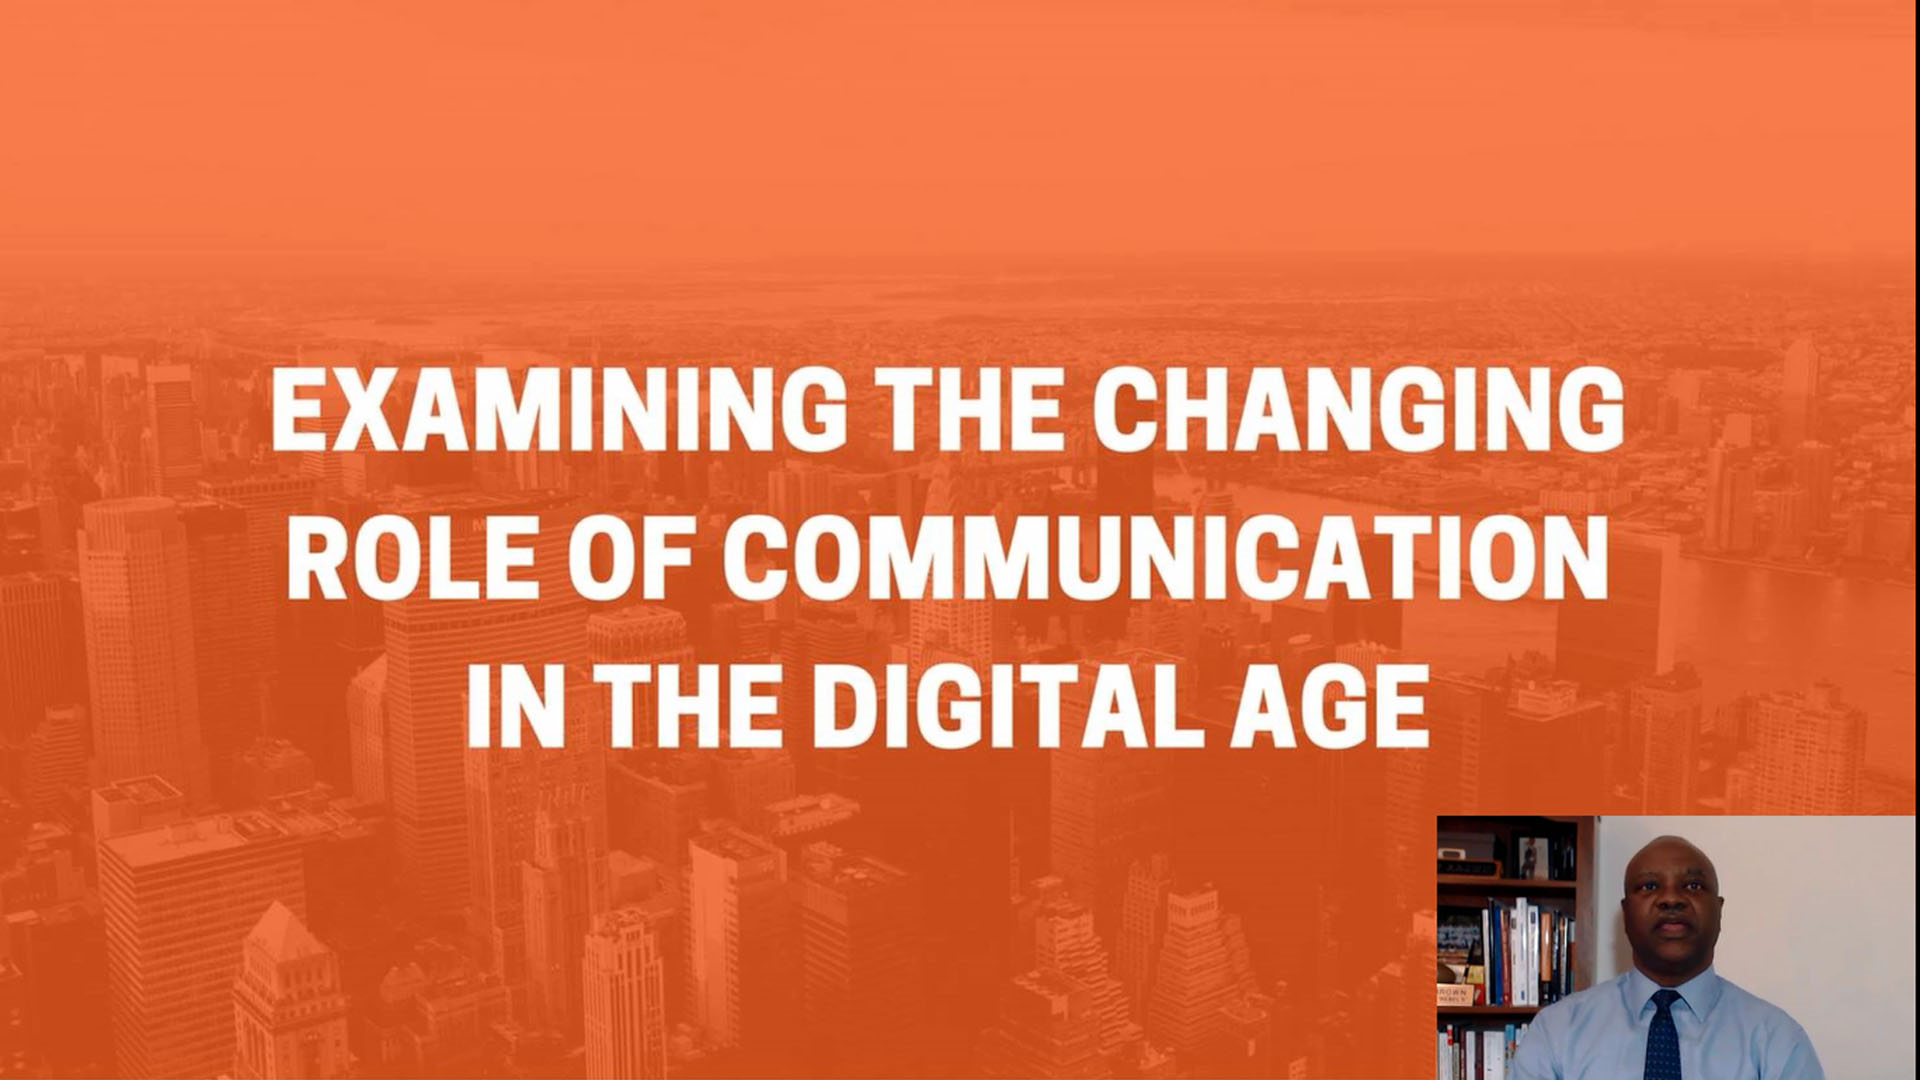 Examining the Changing Role of Communication in the Digital Age